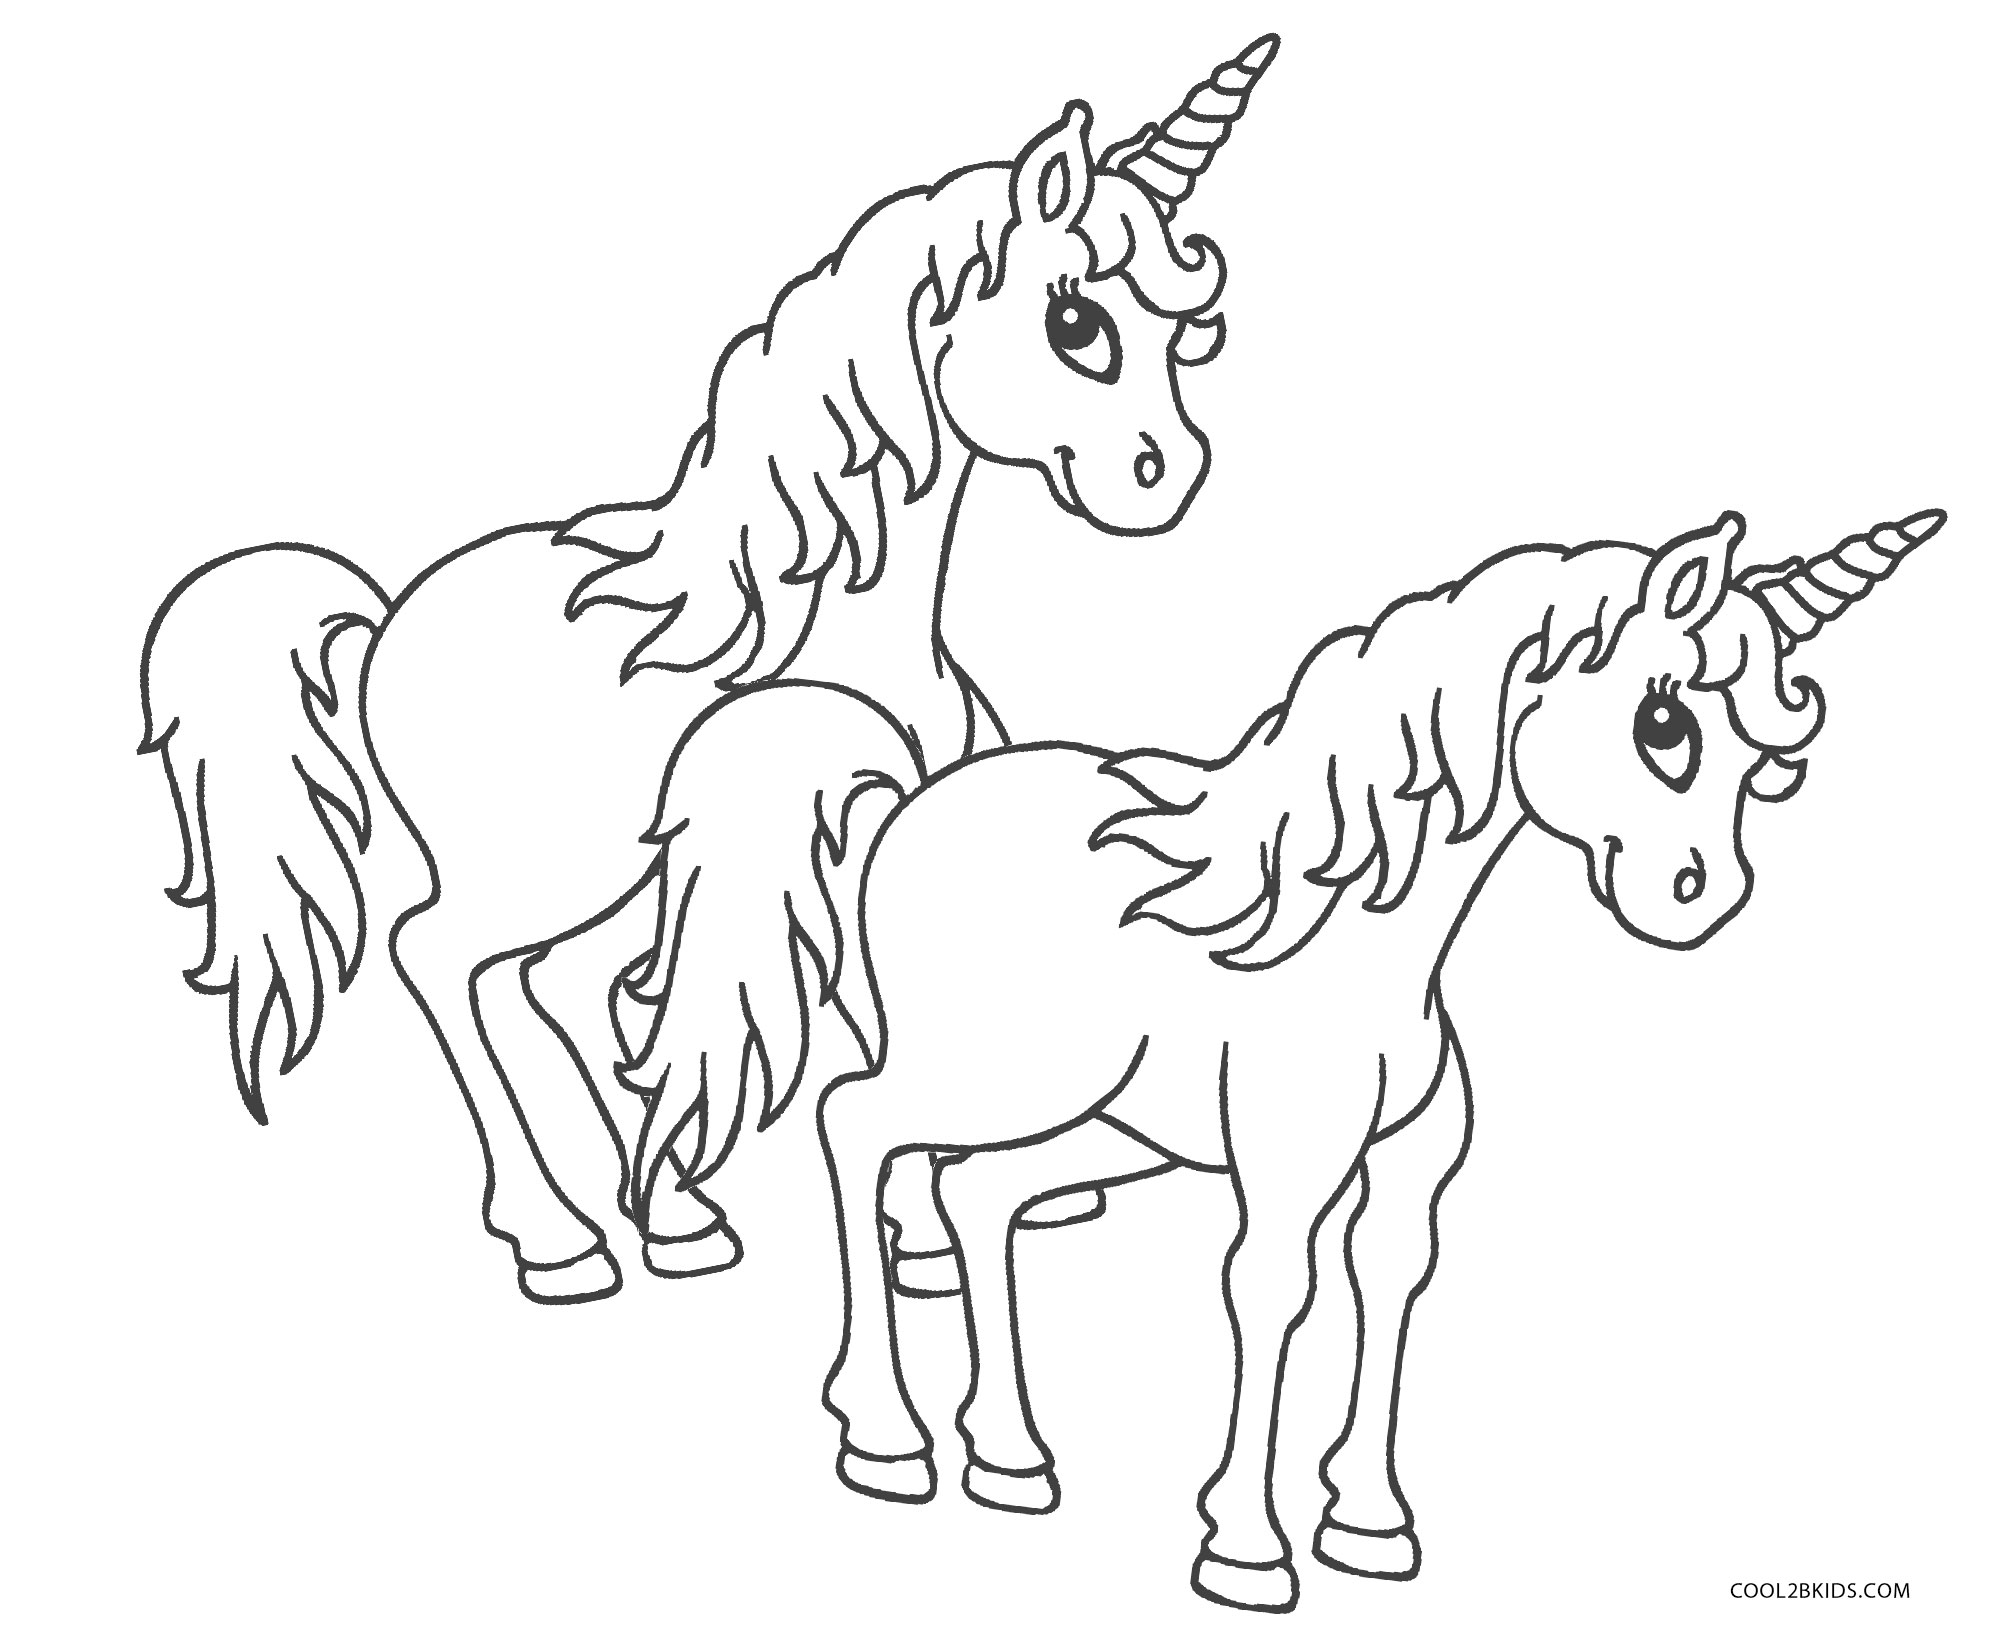 coloring sheet unicorn coloring pictures to print unicorn with rainbow stars and candy coloring page pictures print coloring coloring sheet to unicorn